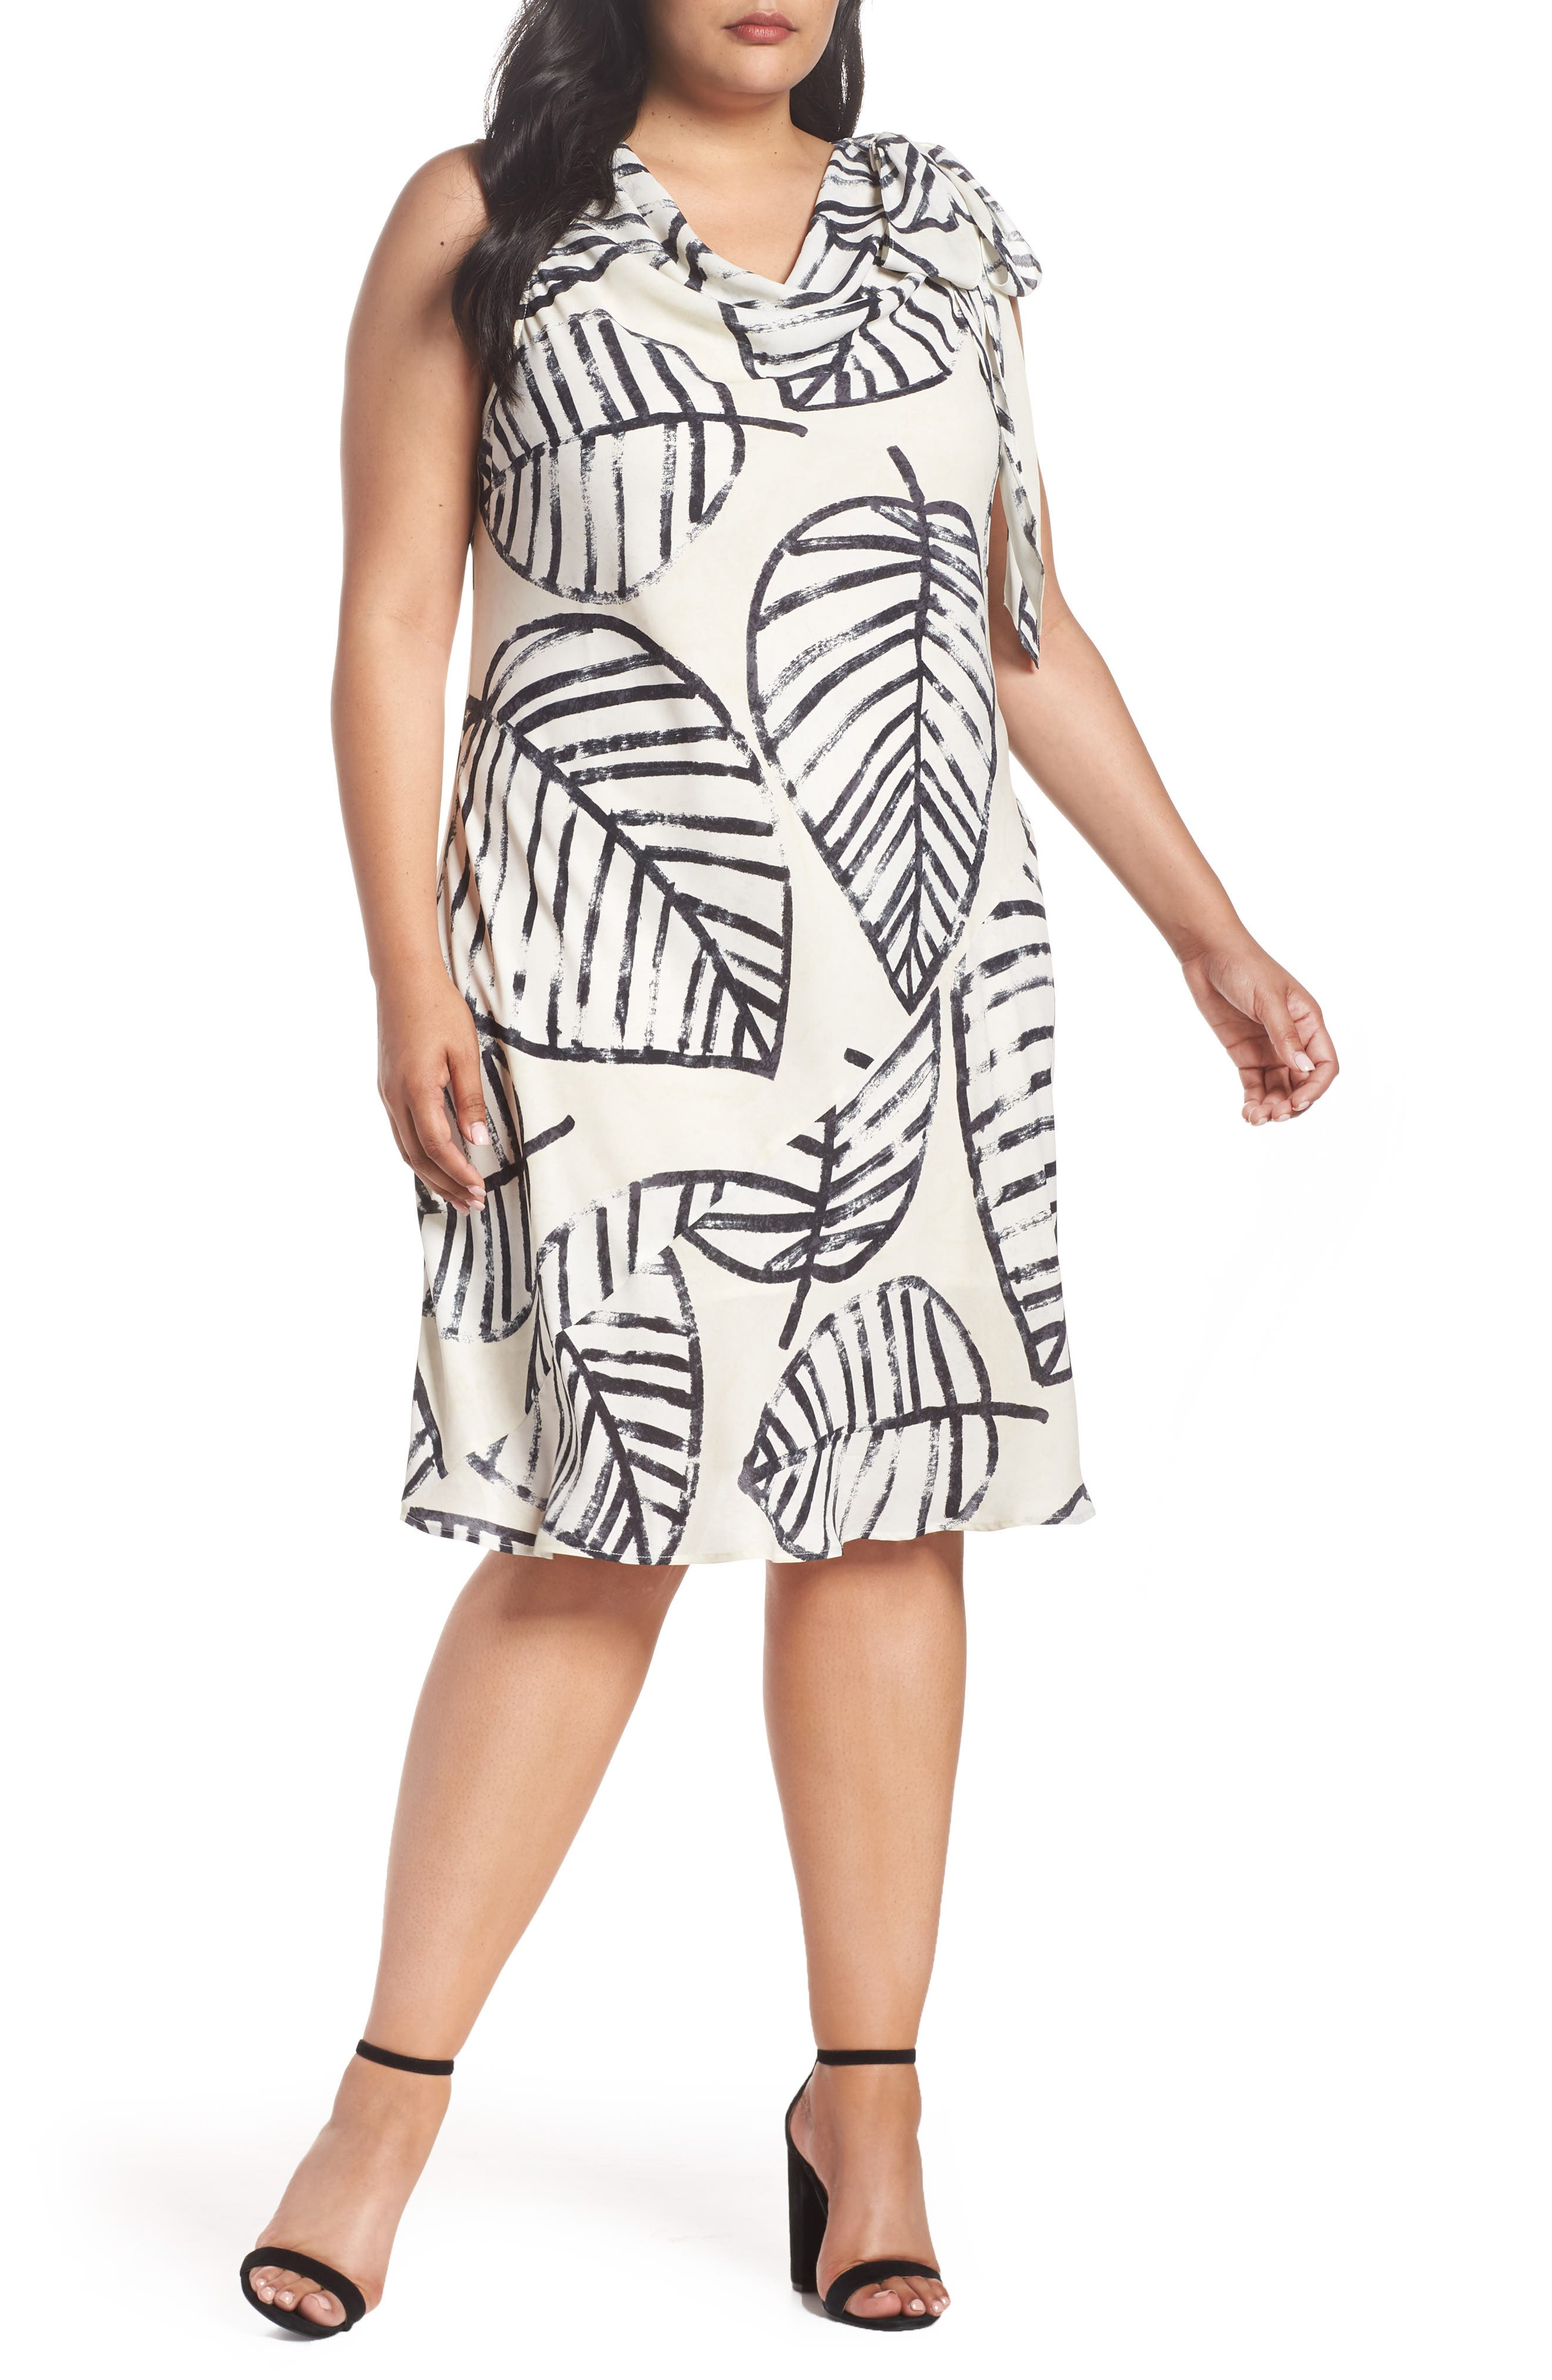 Main Image - NIC+ZOE Etched Leaves Tie Dress (Plus Size)